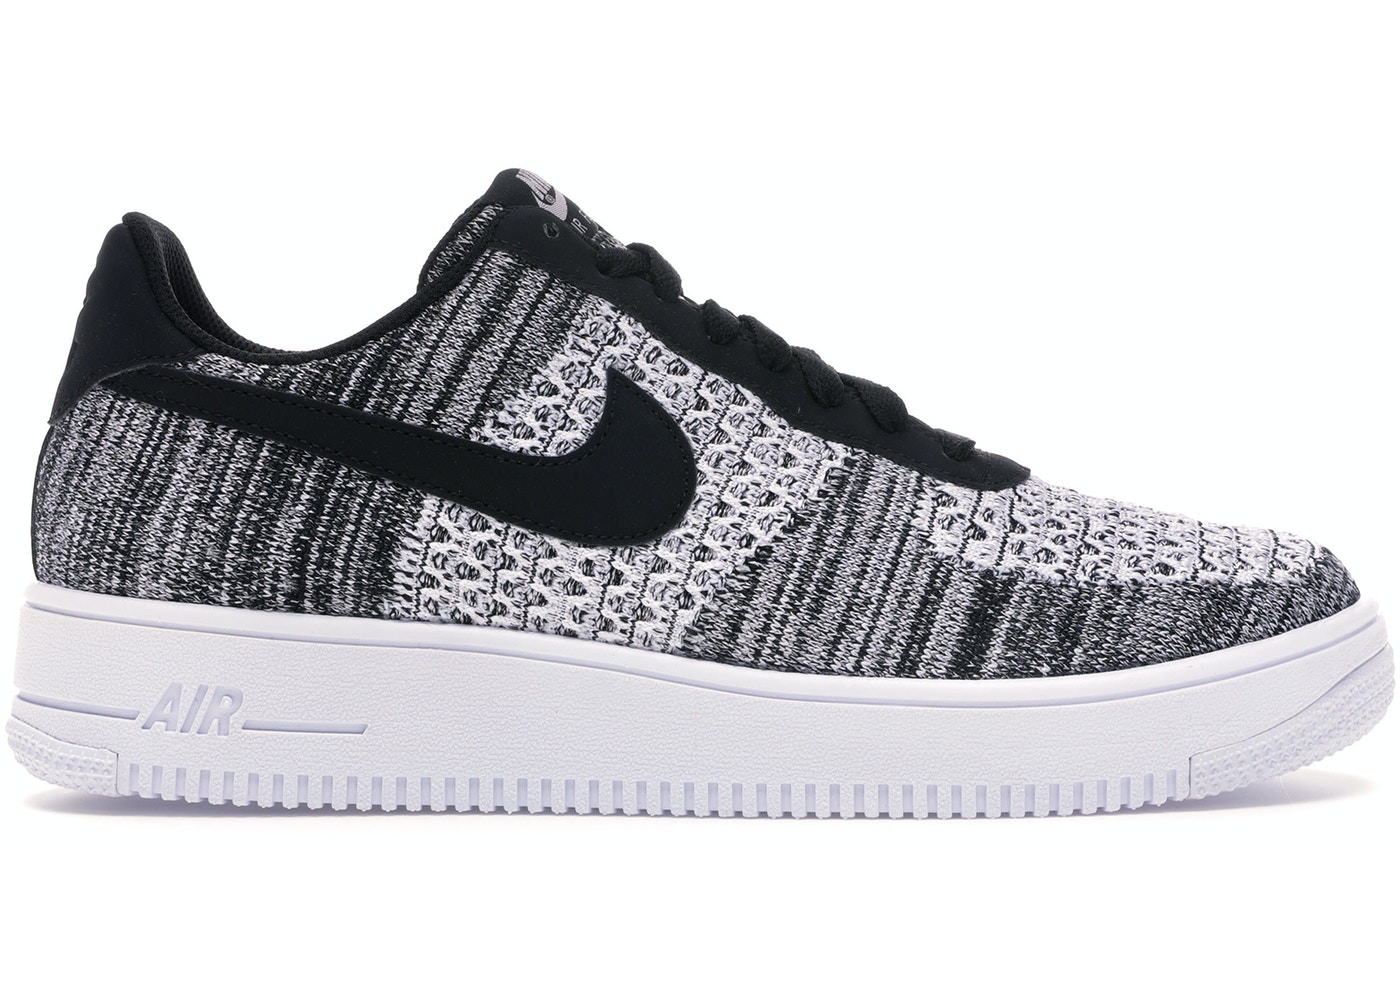 a9747e6cf Buy Nike Air Force Shoes & Deadstock Sneakers